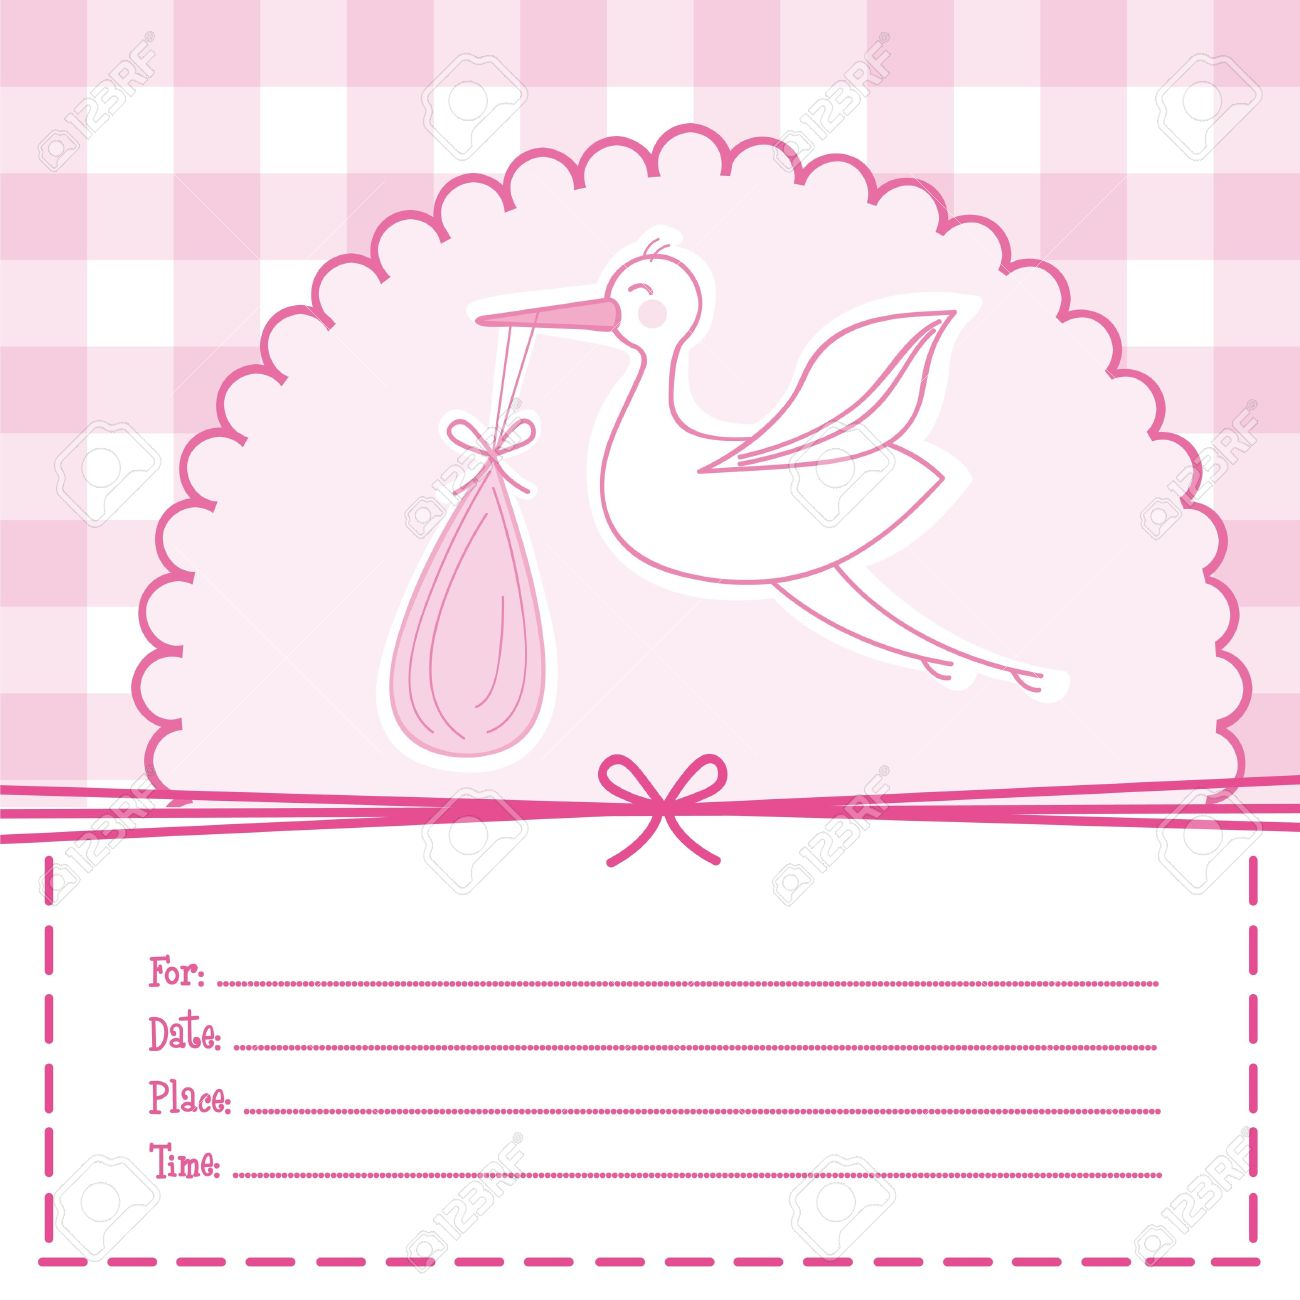 Pink Baby Card With Stork, Baby Shower. Illustration Stock Vector   12458943